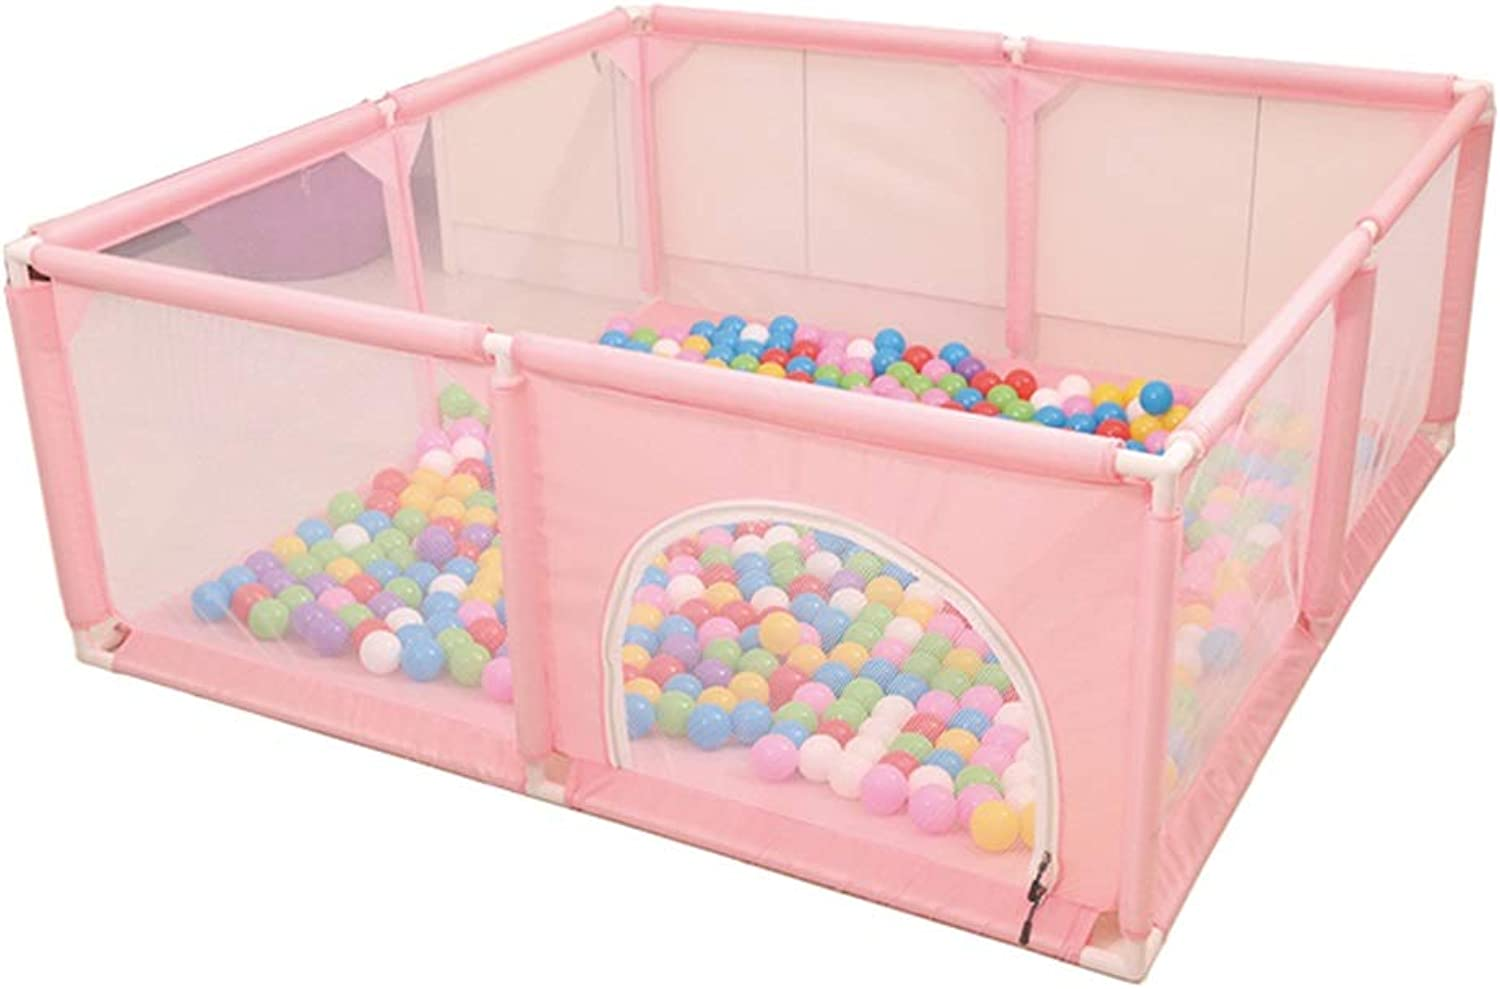 GAIXIA Baby Playpen Toddler Compact Safety Play Center Yard with Breathable Mesh and Double Zipper Door (color   Pink, Size   150×150×62cm)